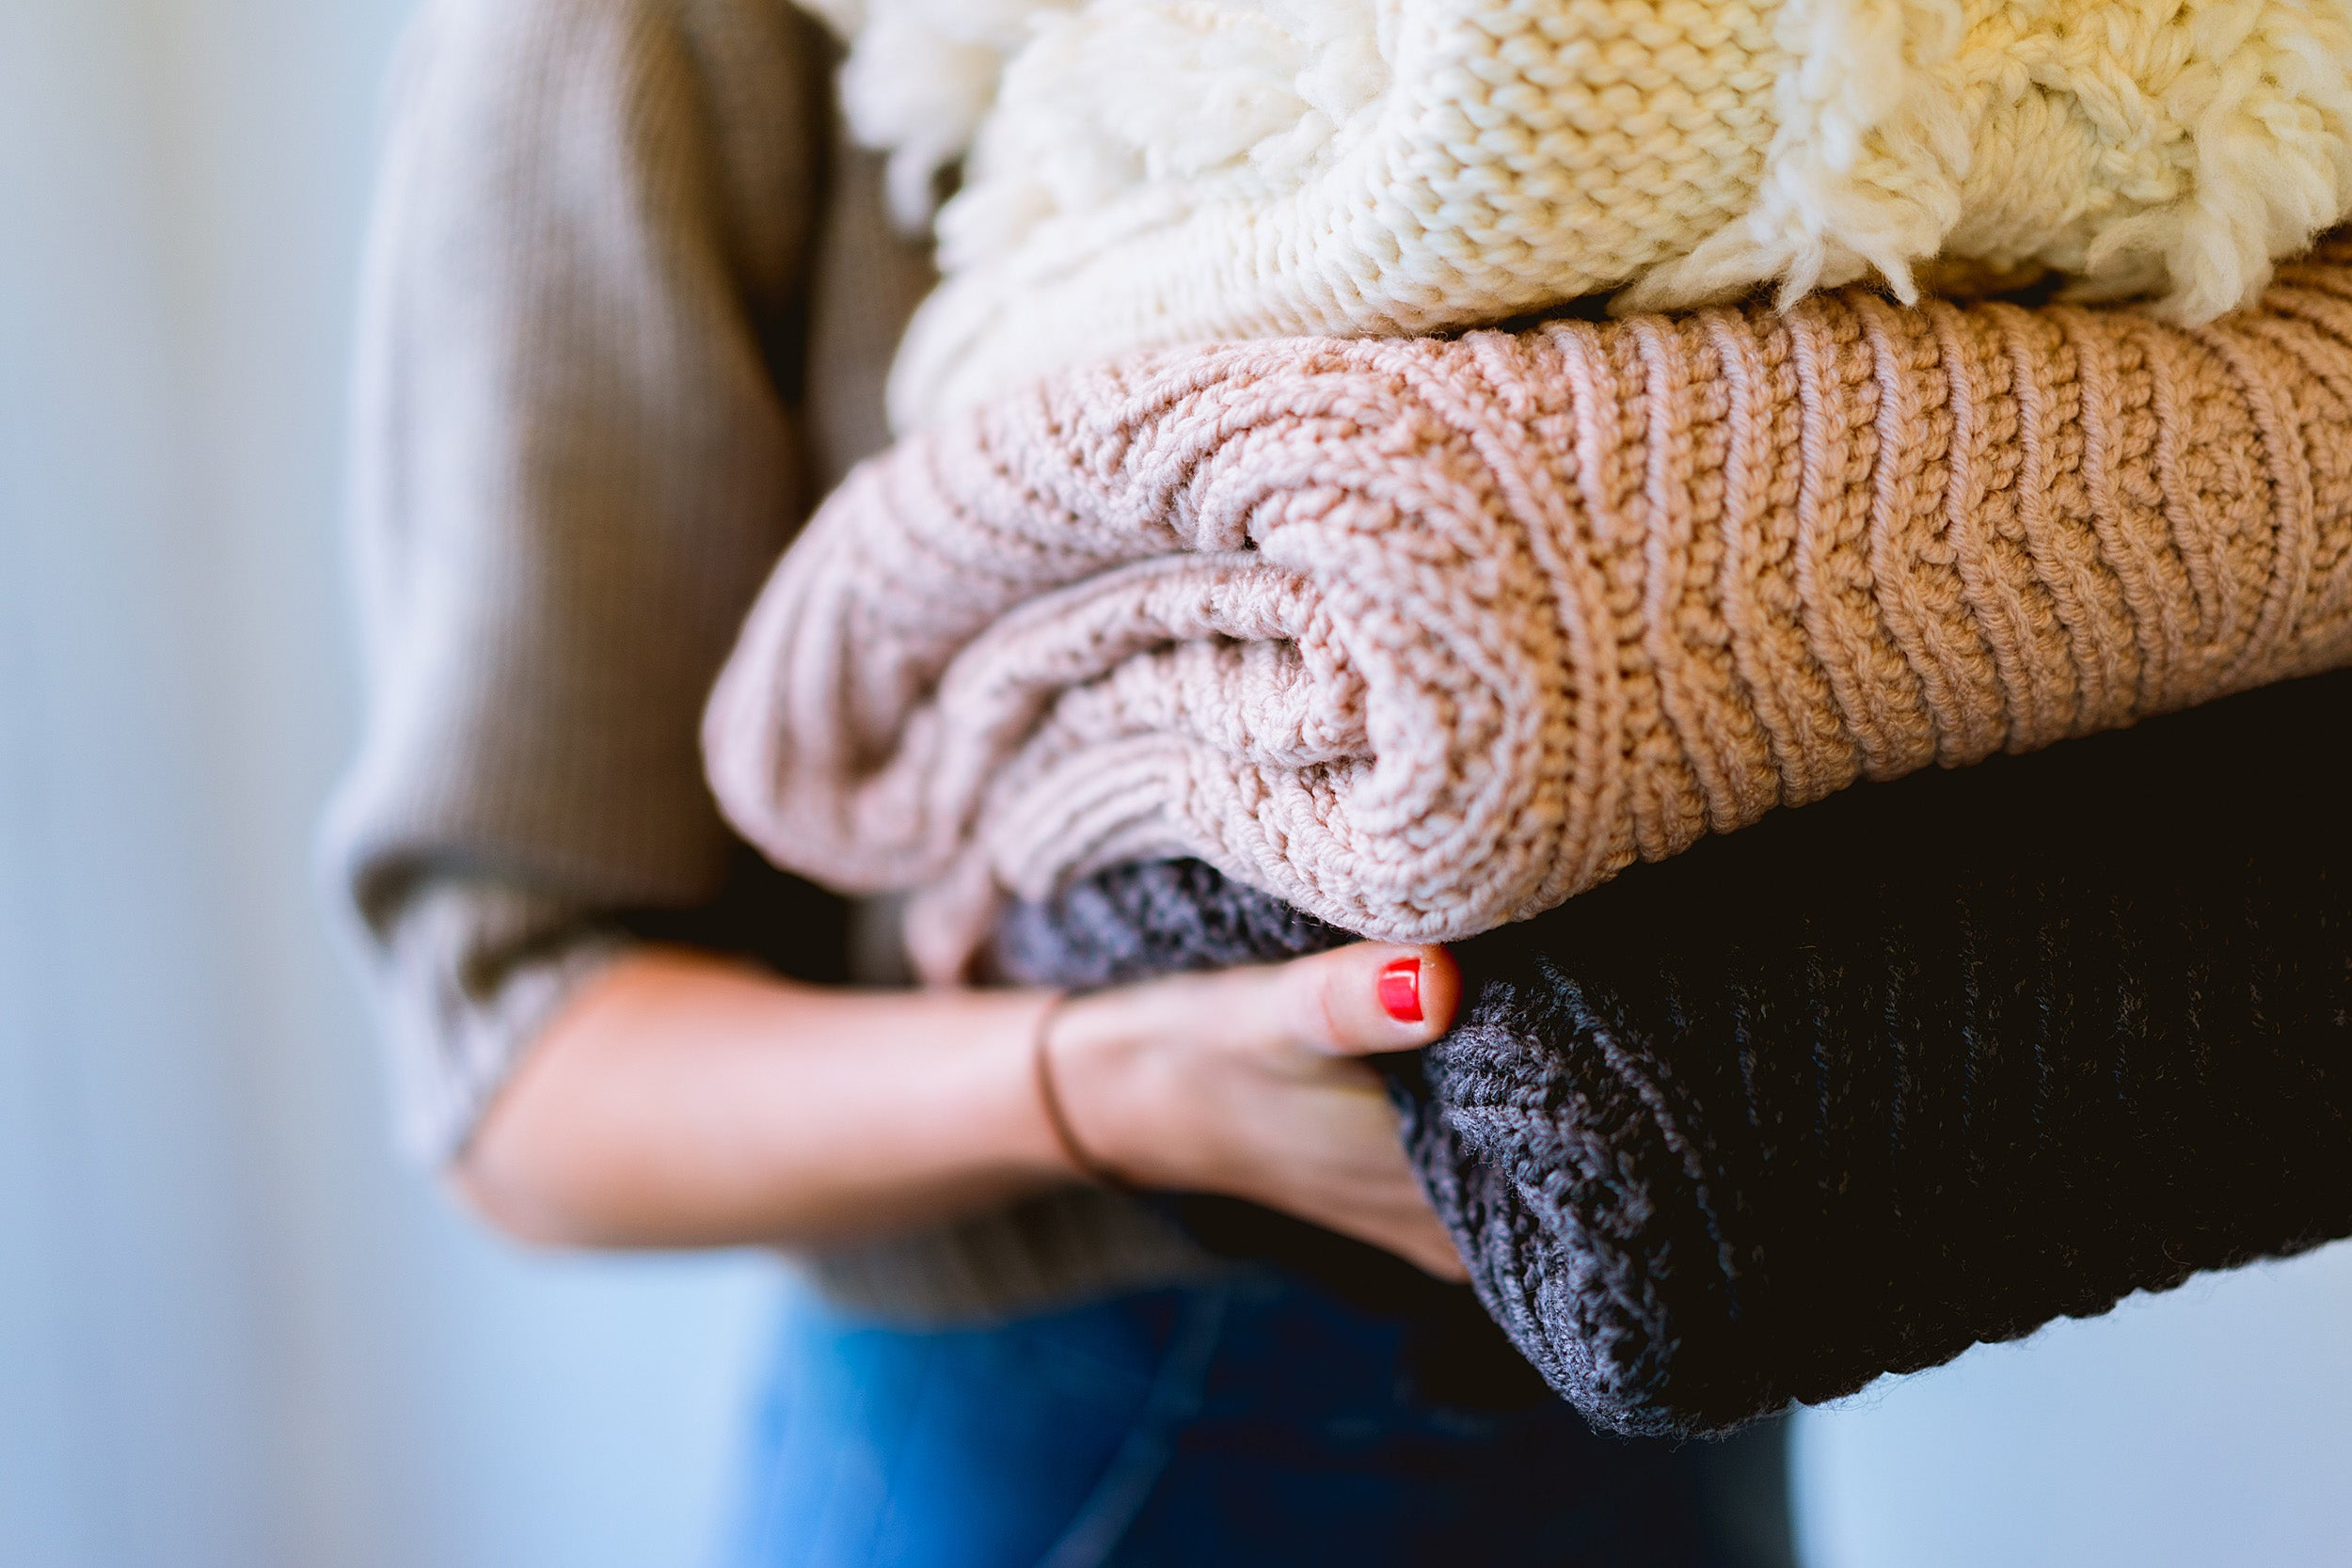 Close up of person's hands holding stack of folded sweaters.